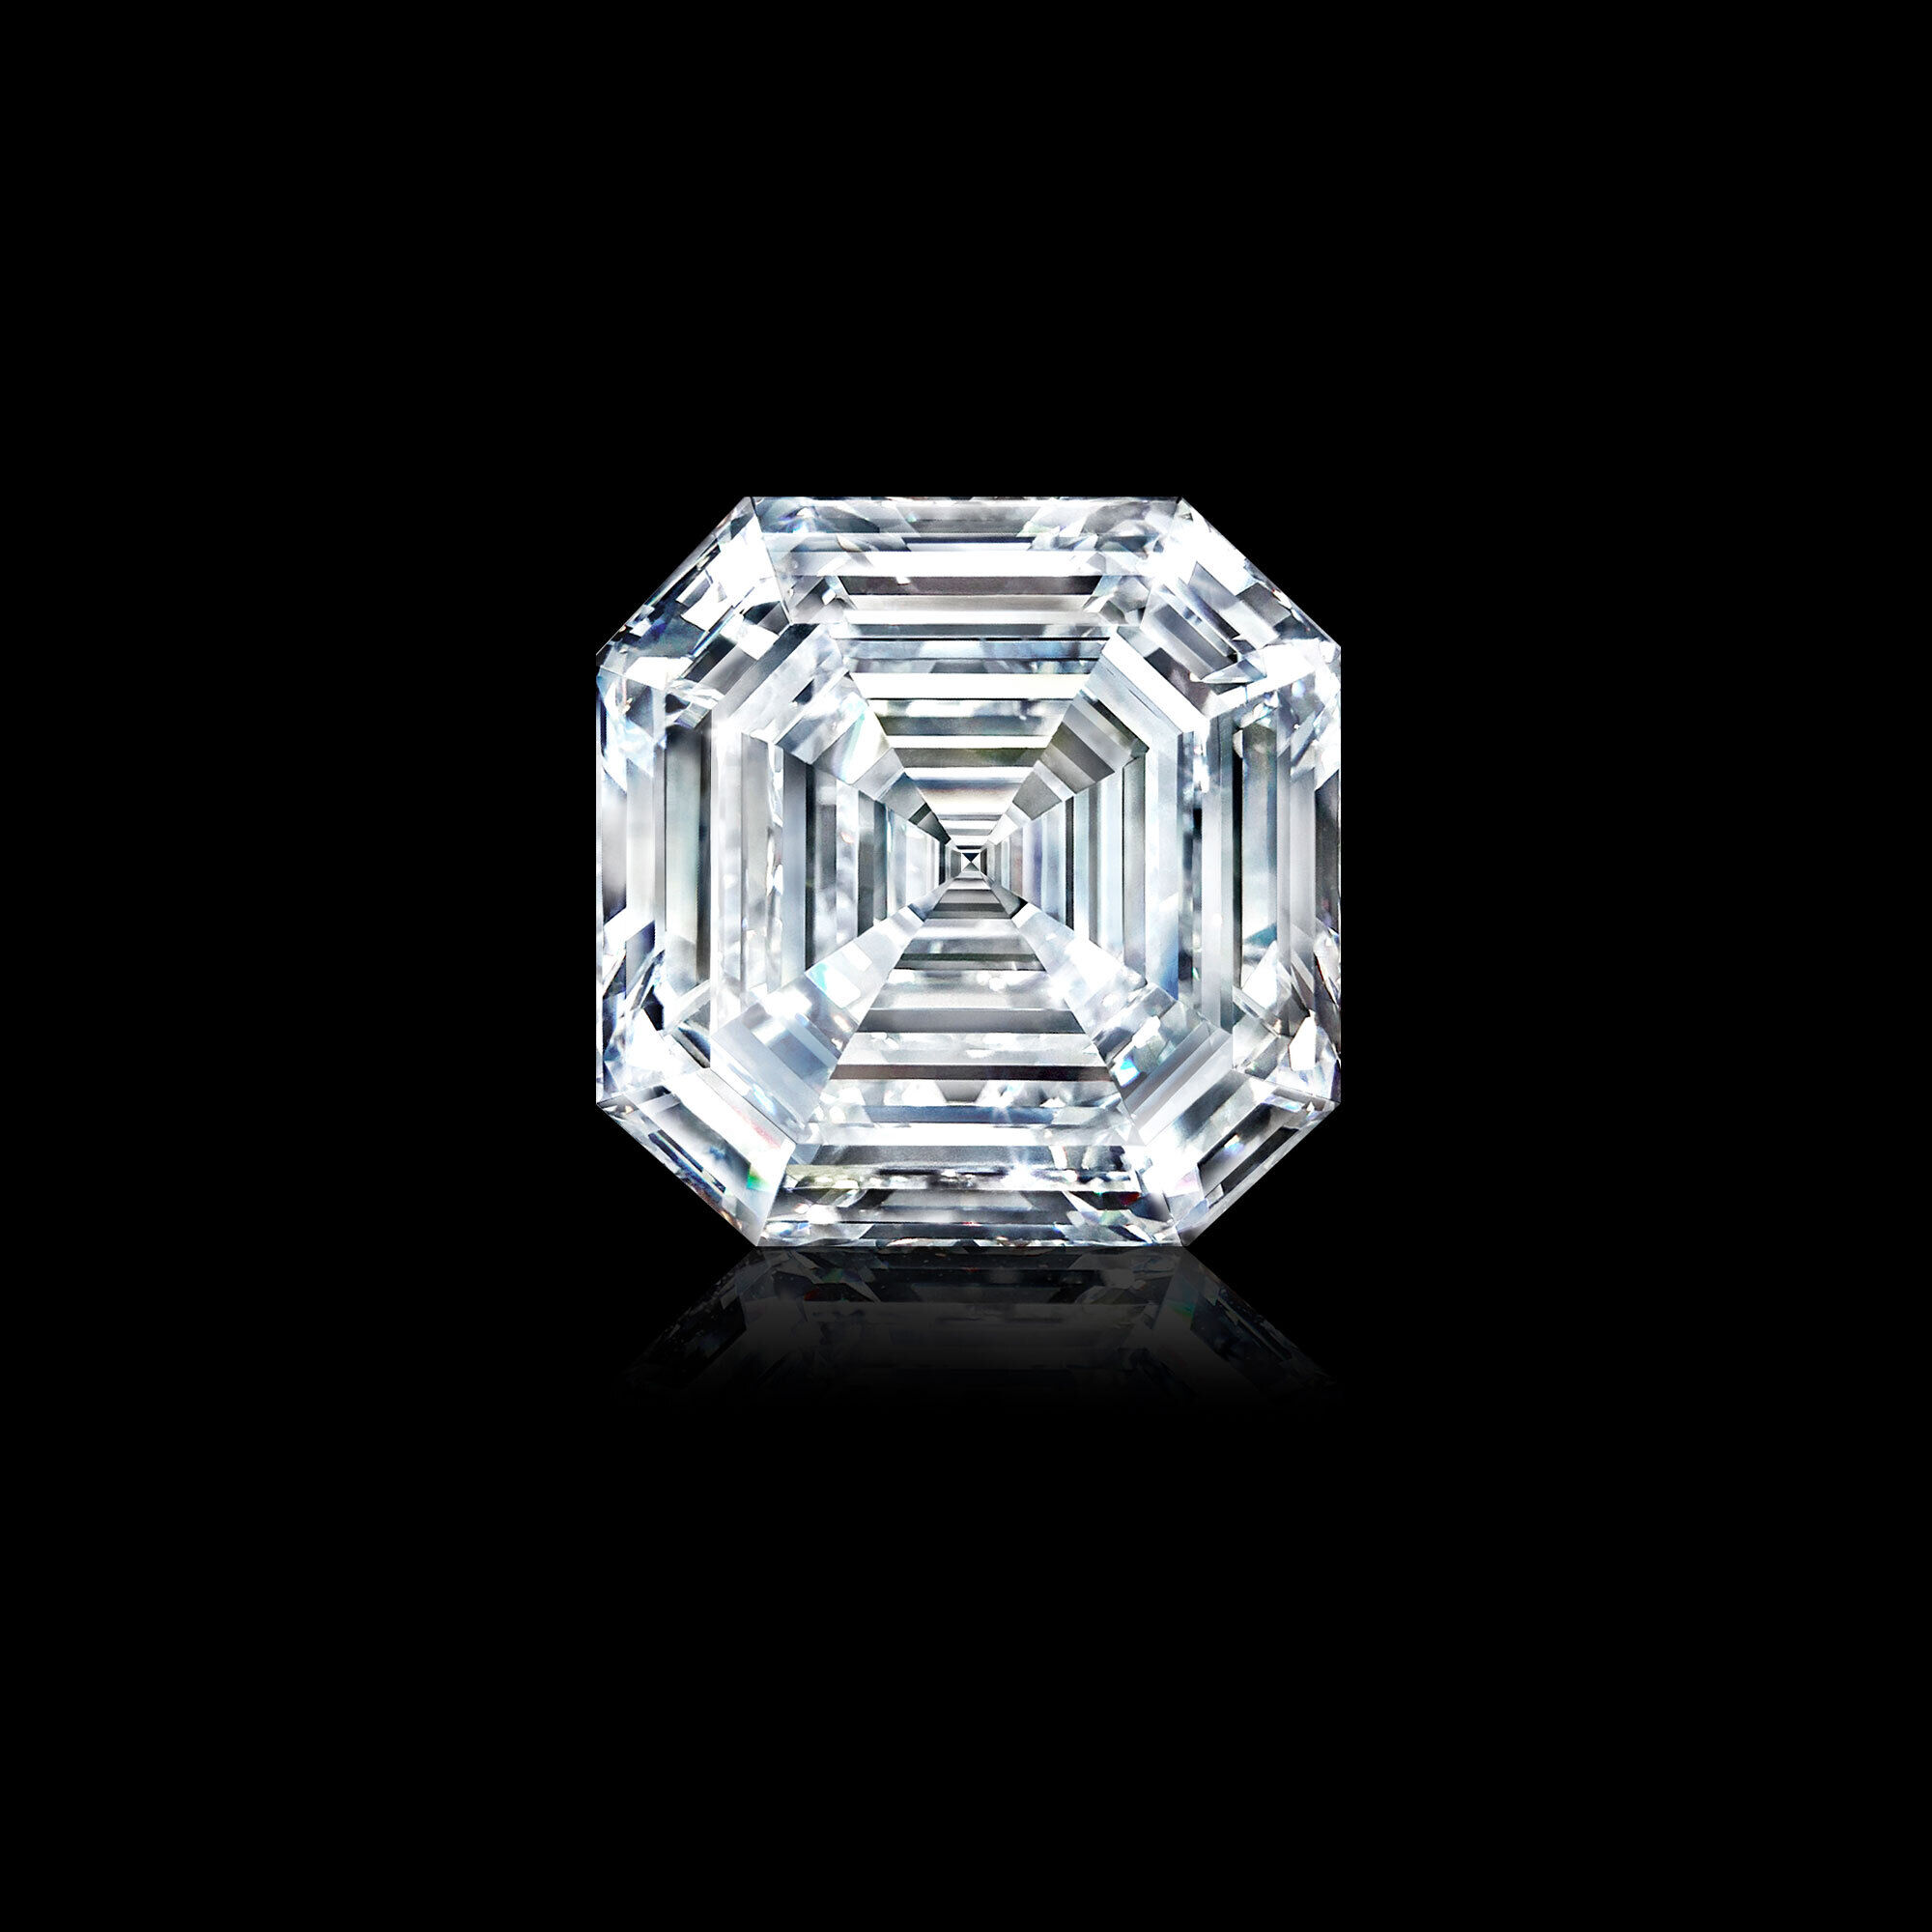 The 302.37 carats Graff Lesedi La Rona diamond